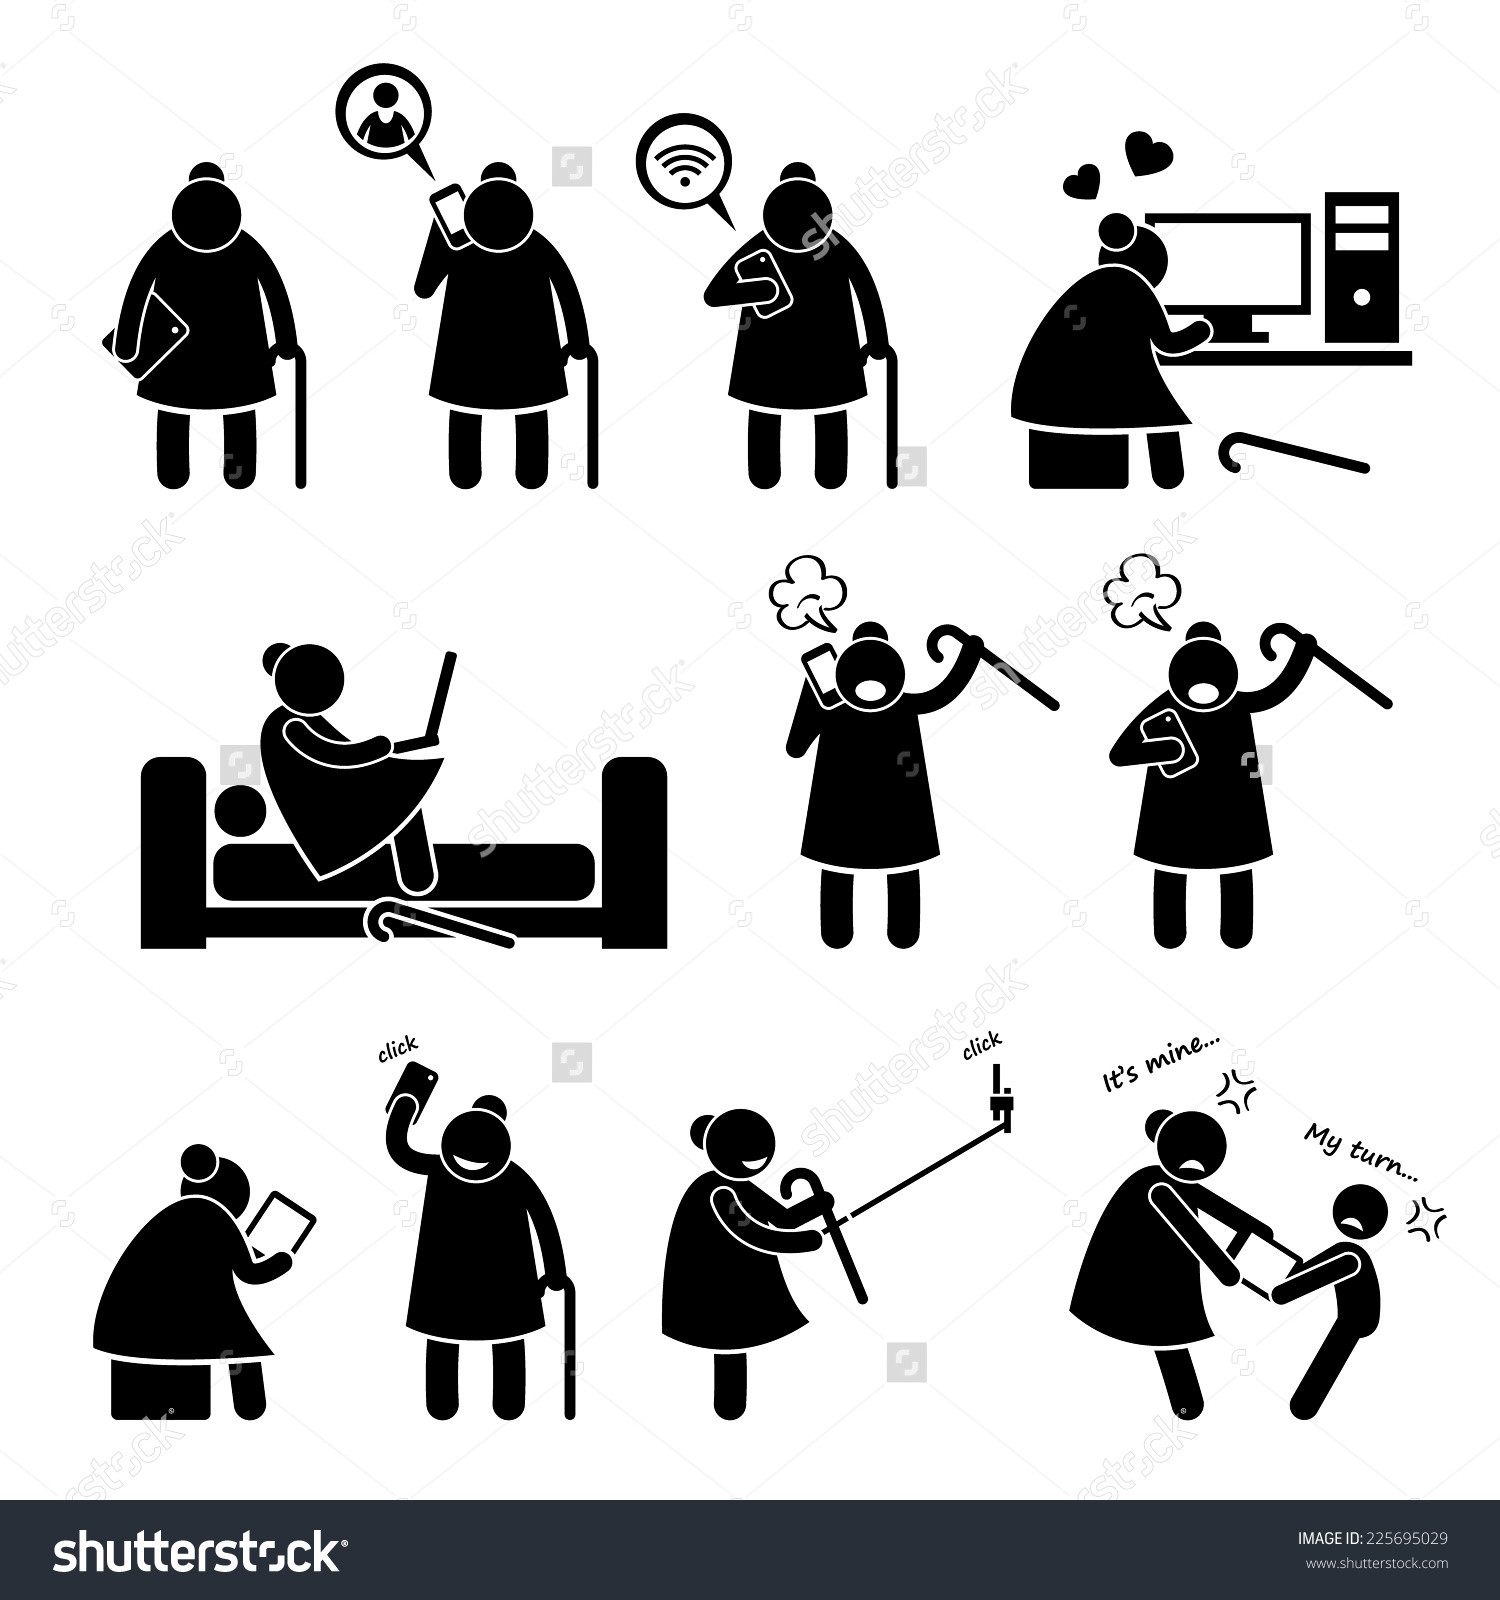 Funny Stick Figures And Computer Clipart.